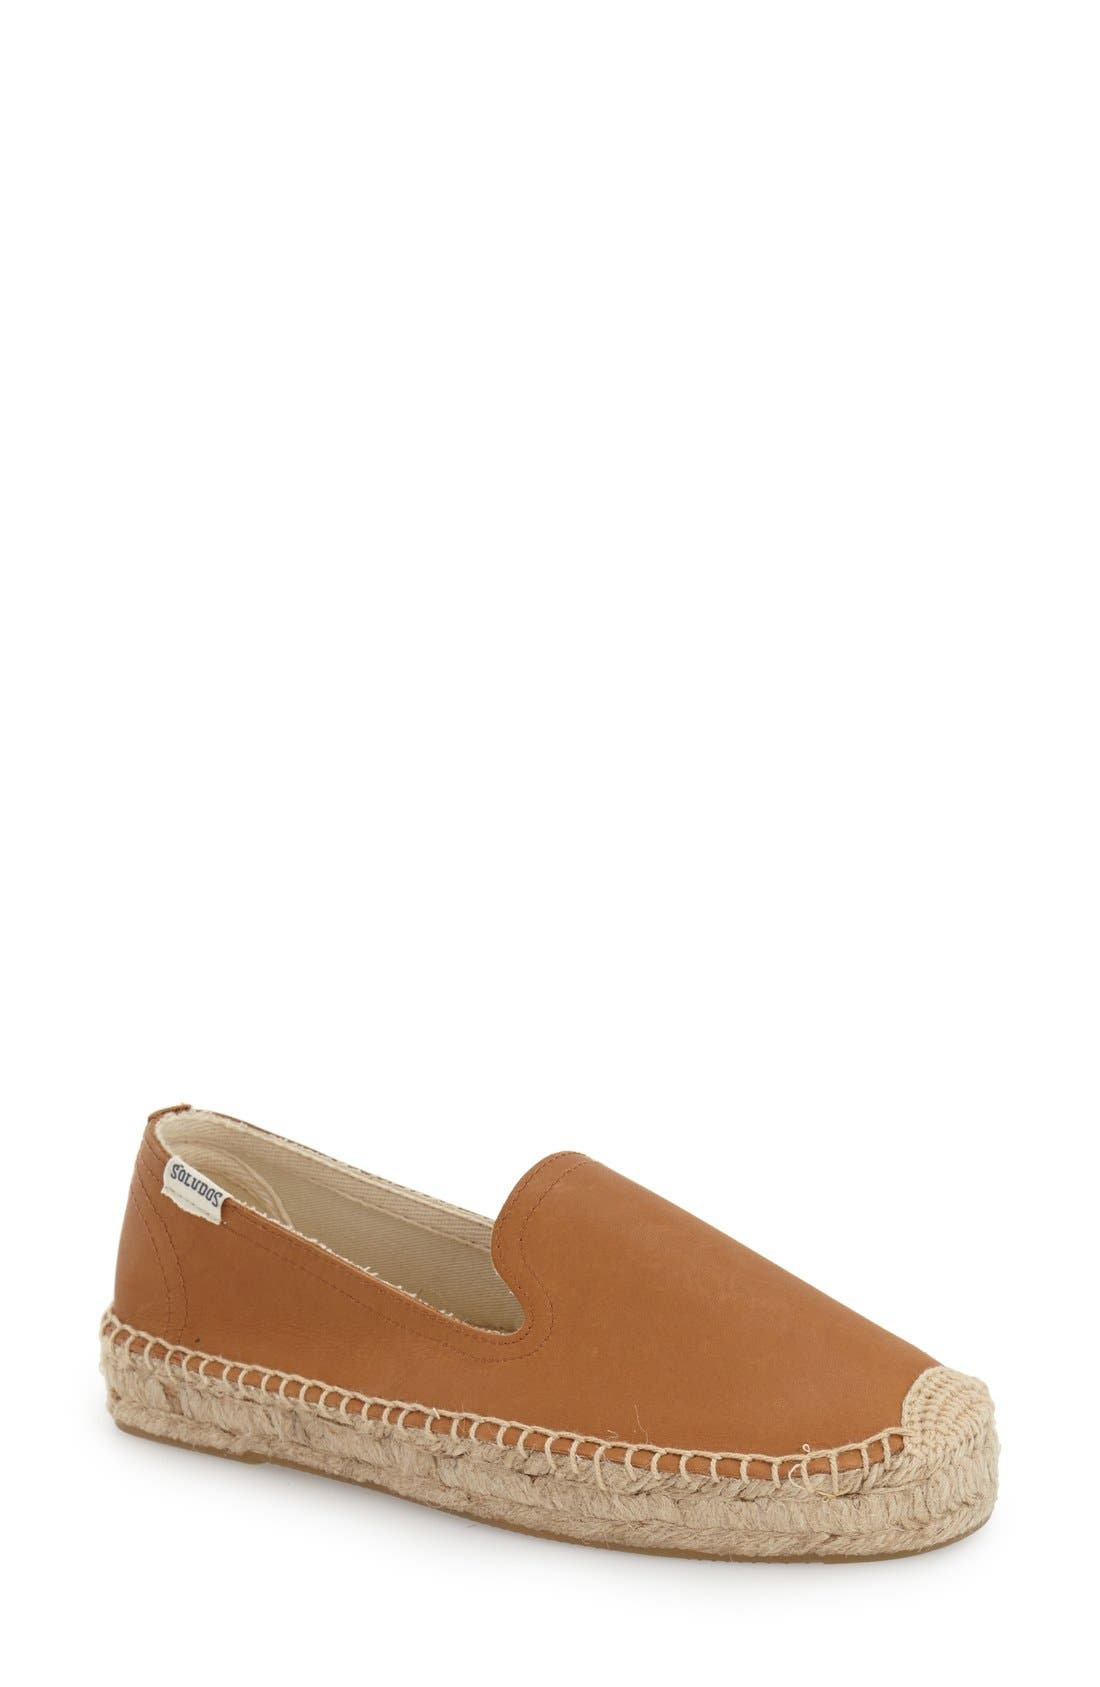 SOLUDOS 'Smoking' Espadrille Platform Shoe, Main, color, TAN LEATHER